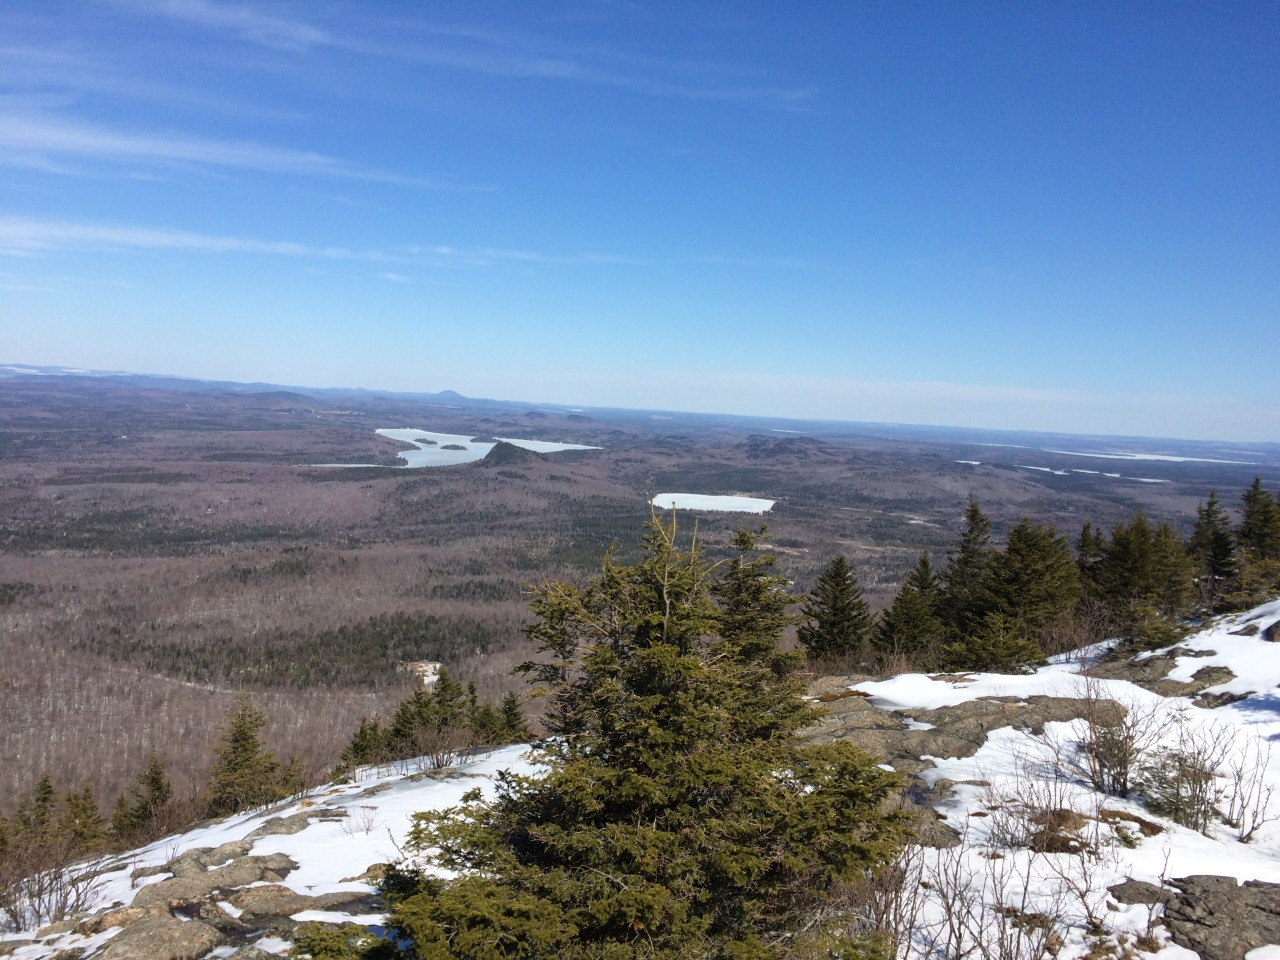 Top if the mountain, south of Quebec, Canada